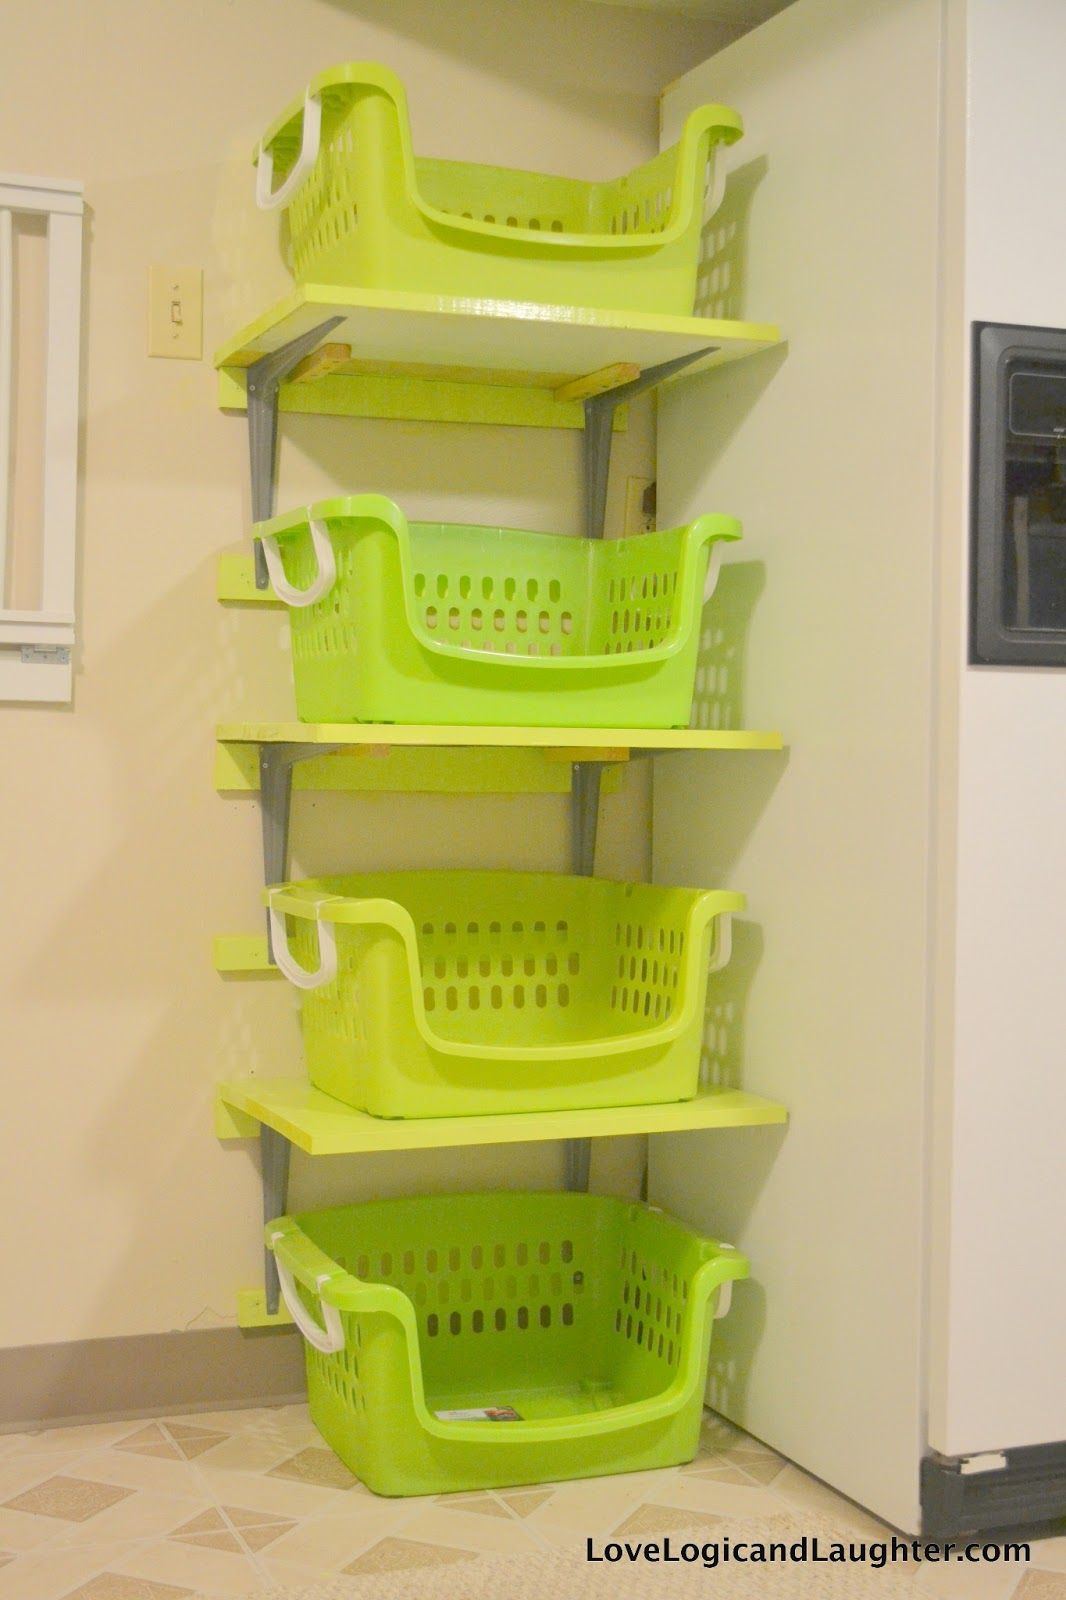 Bathroom/Laundry Room Makeovers logic and laughter: laundry room makeover - updated utility sink